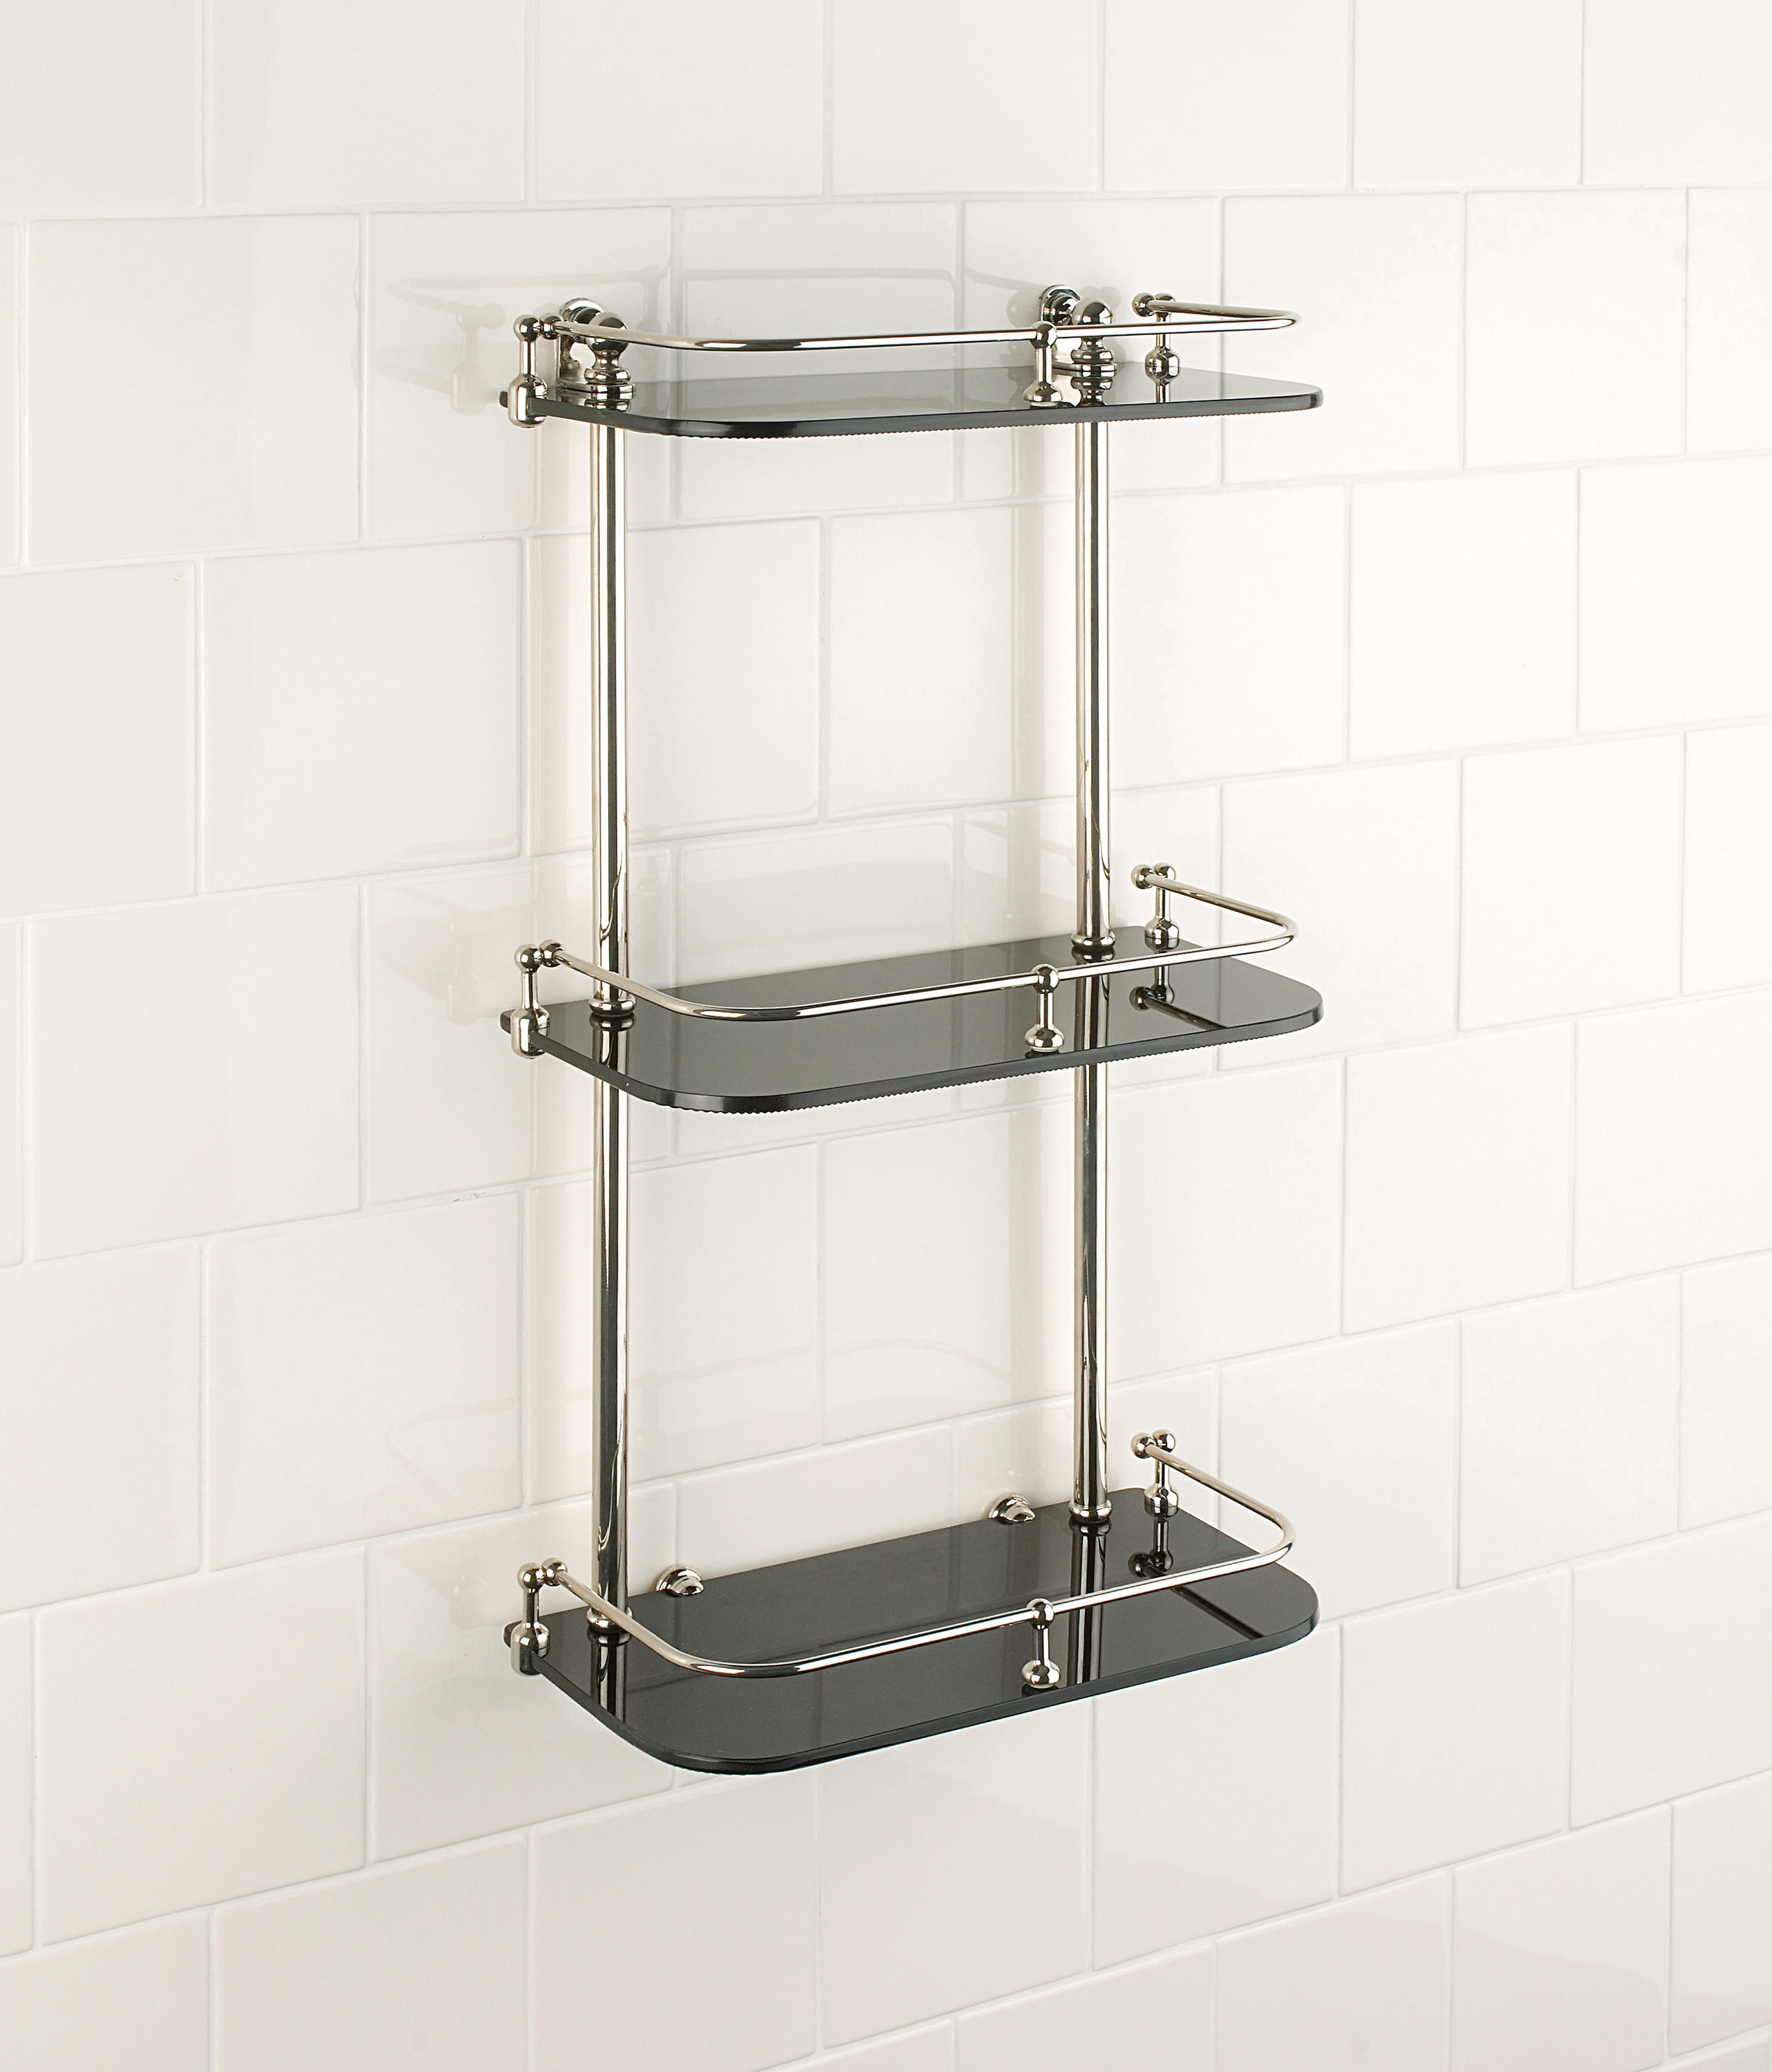 WALL SHELF | CLEAR GLASS - Bath shelving from Aquadomo | Architonic